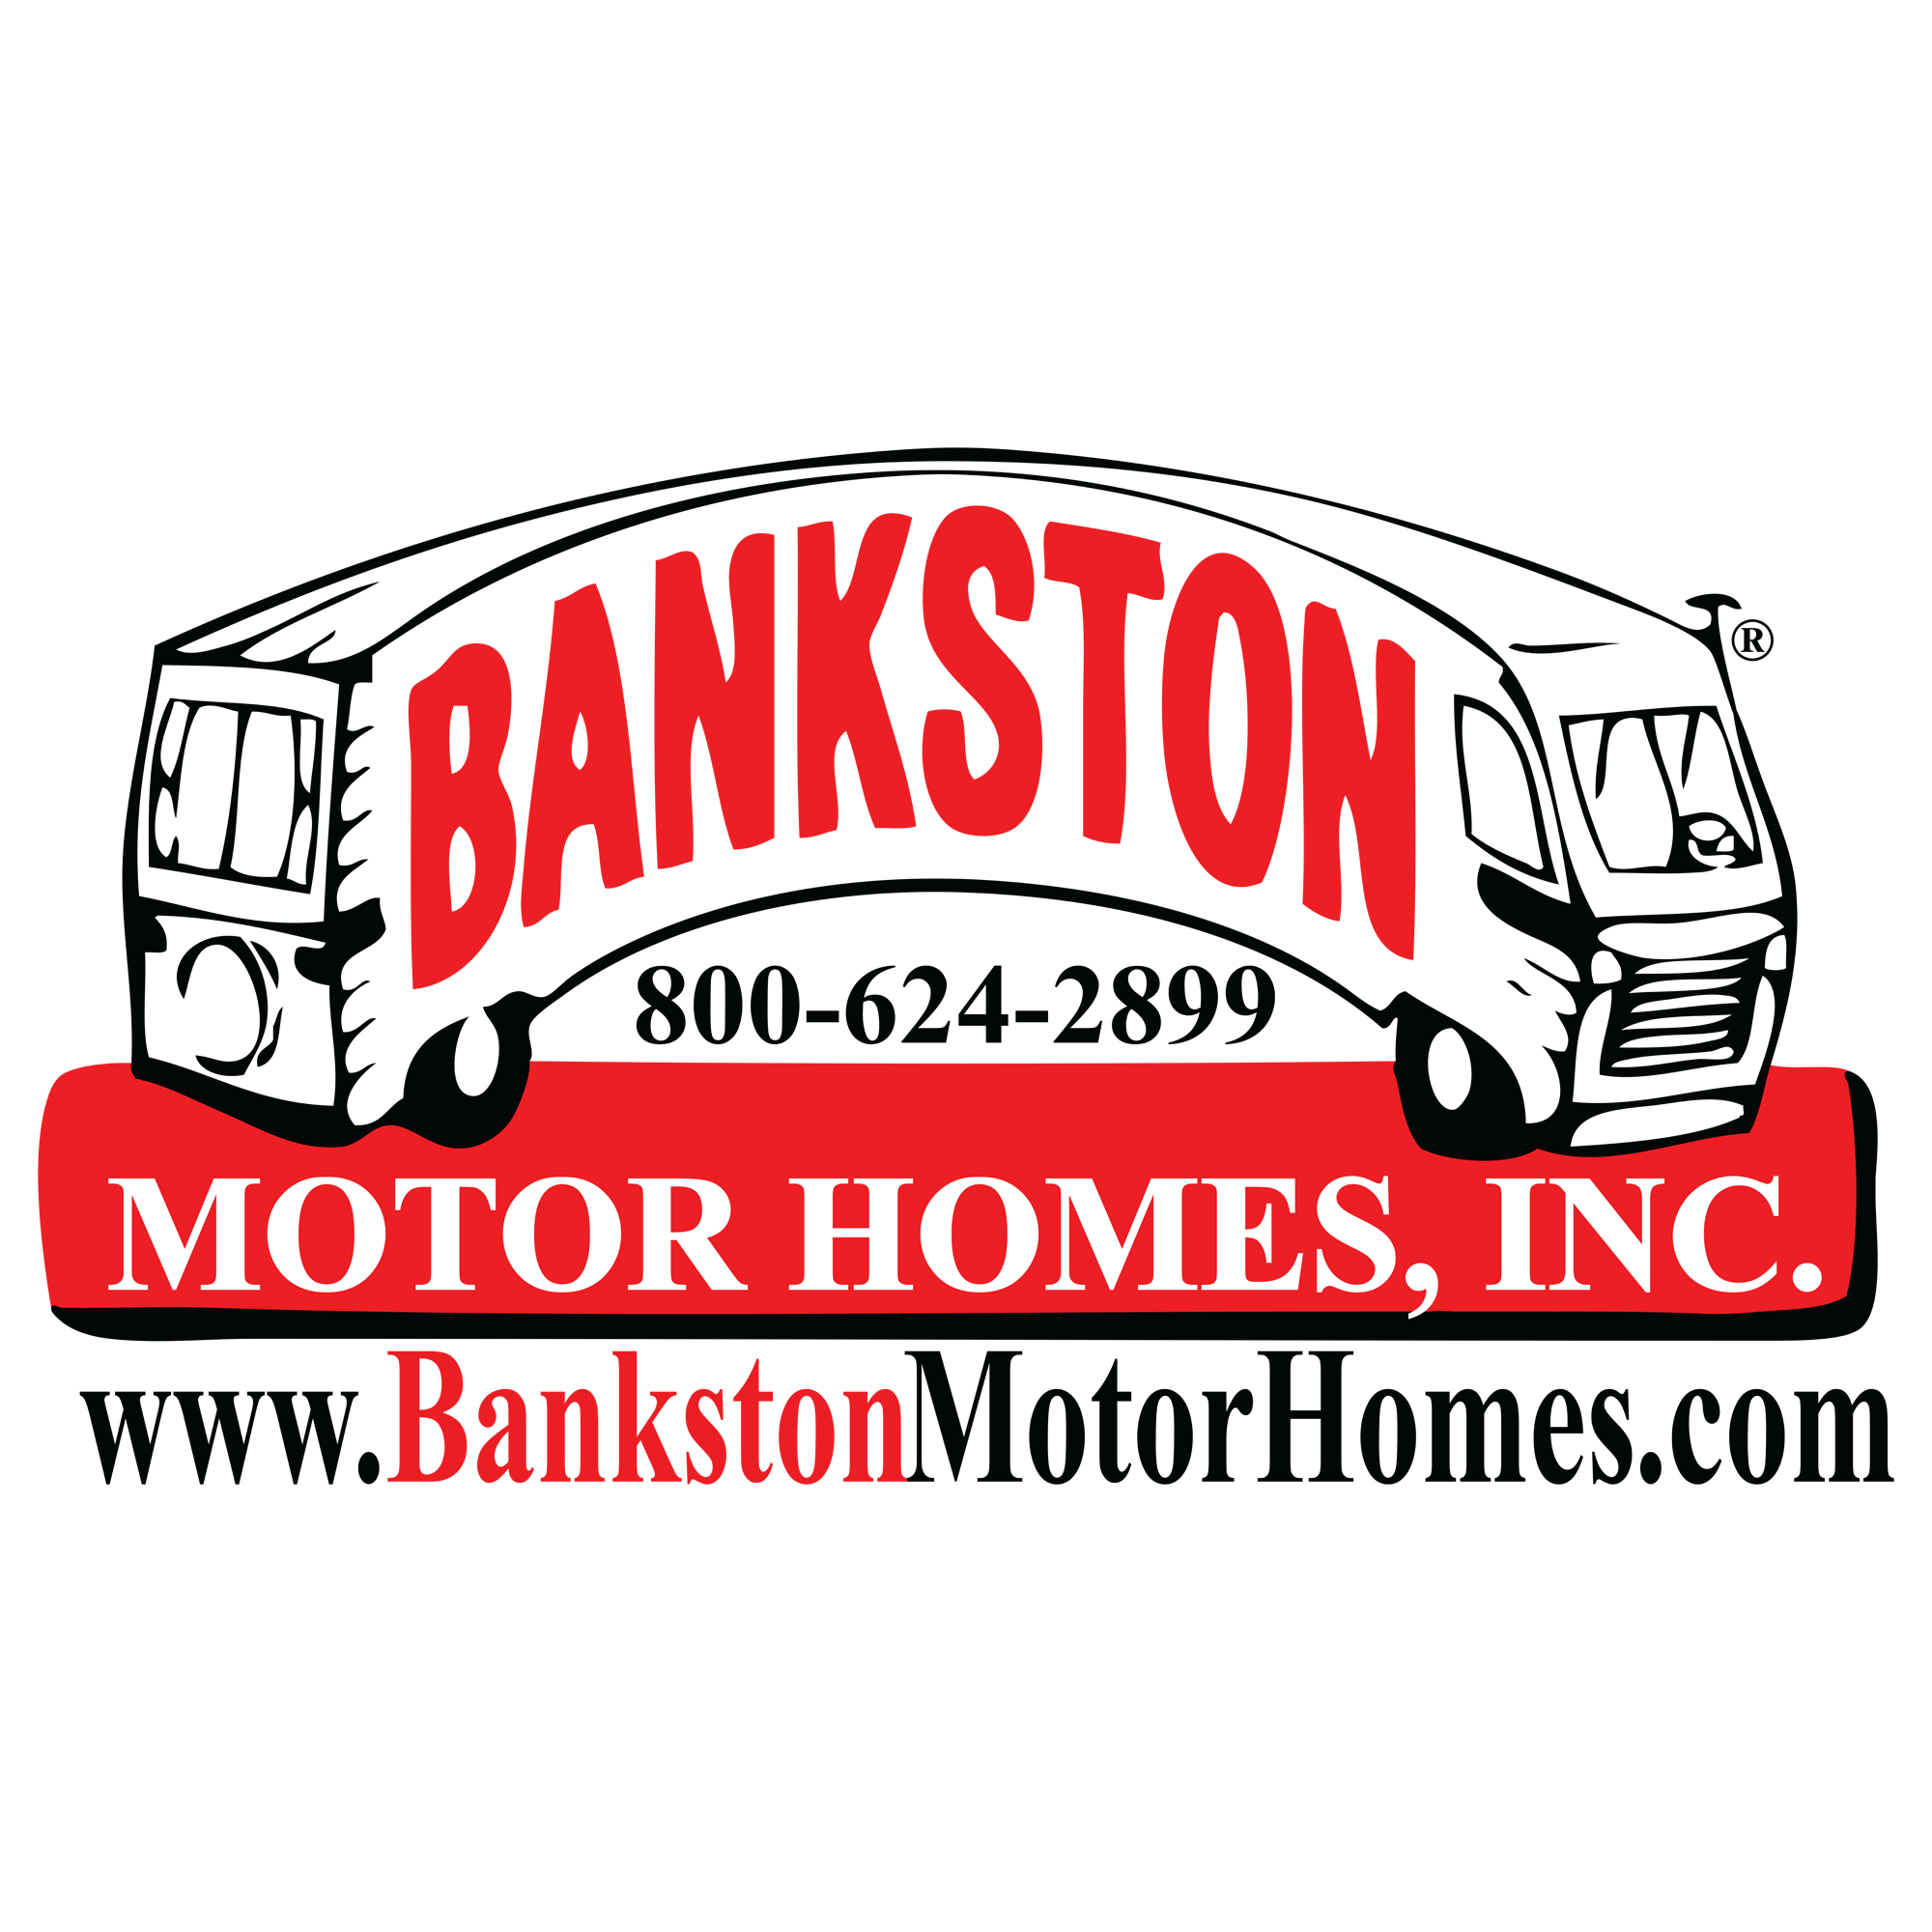 bankston motor homes in huntsville al 800 624 2